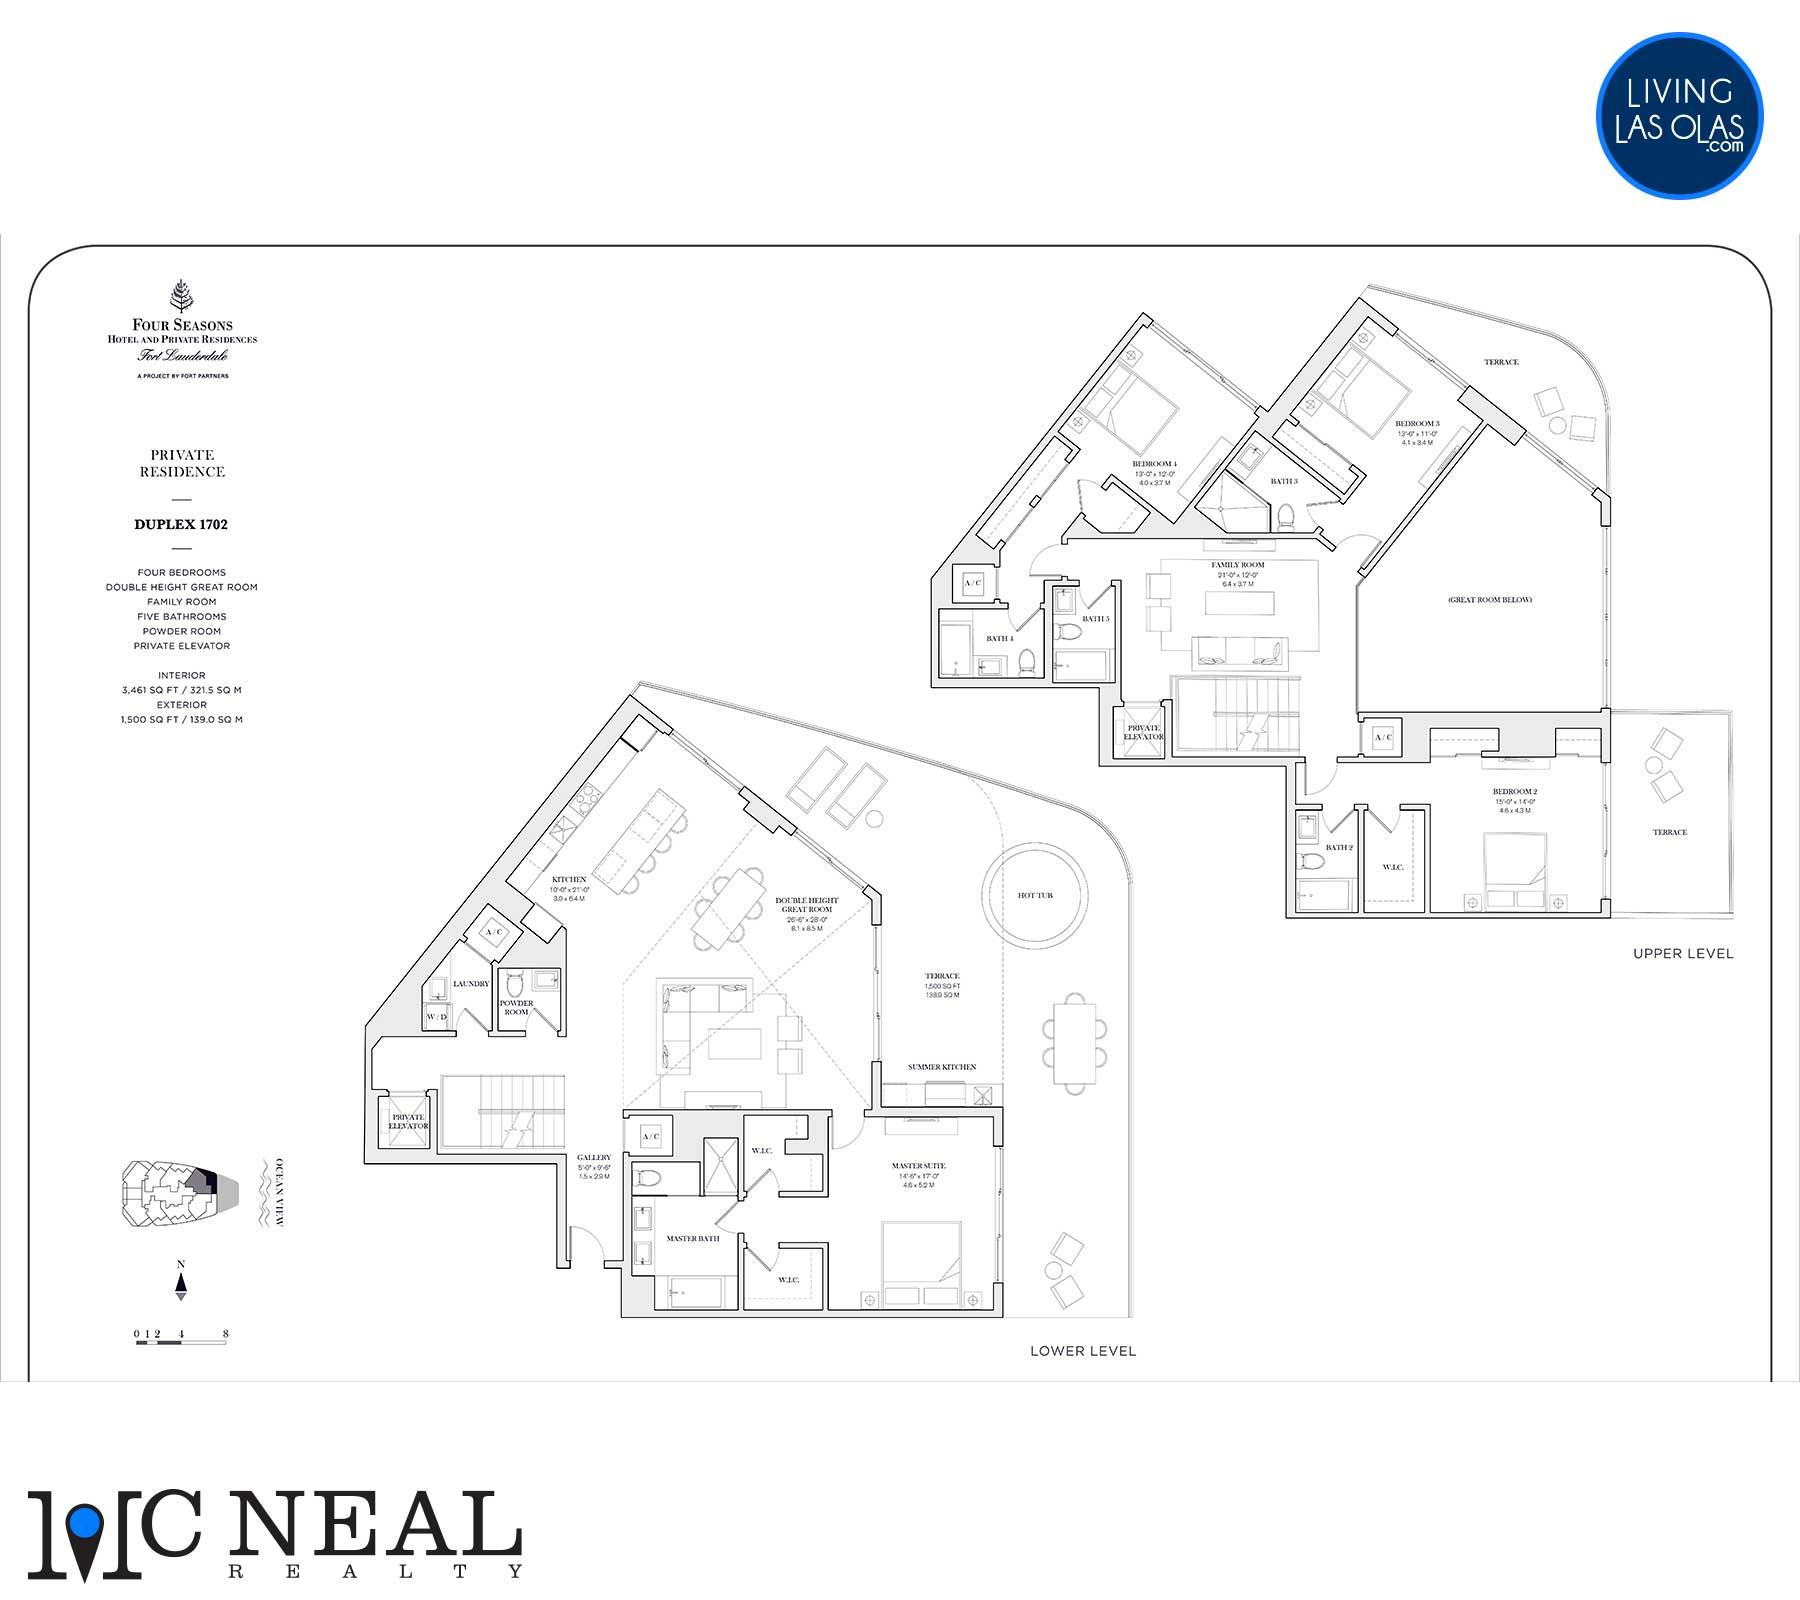 Four Seasons Private Residences Floor Plan 1702